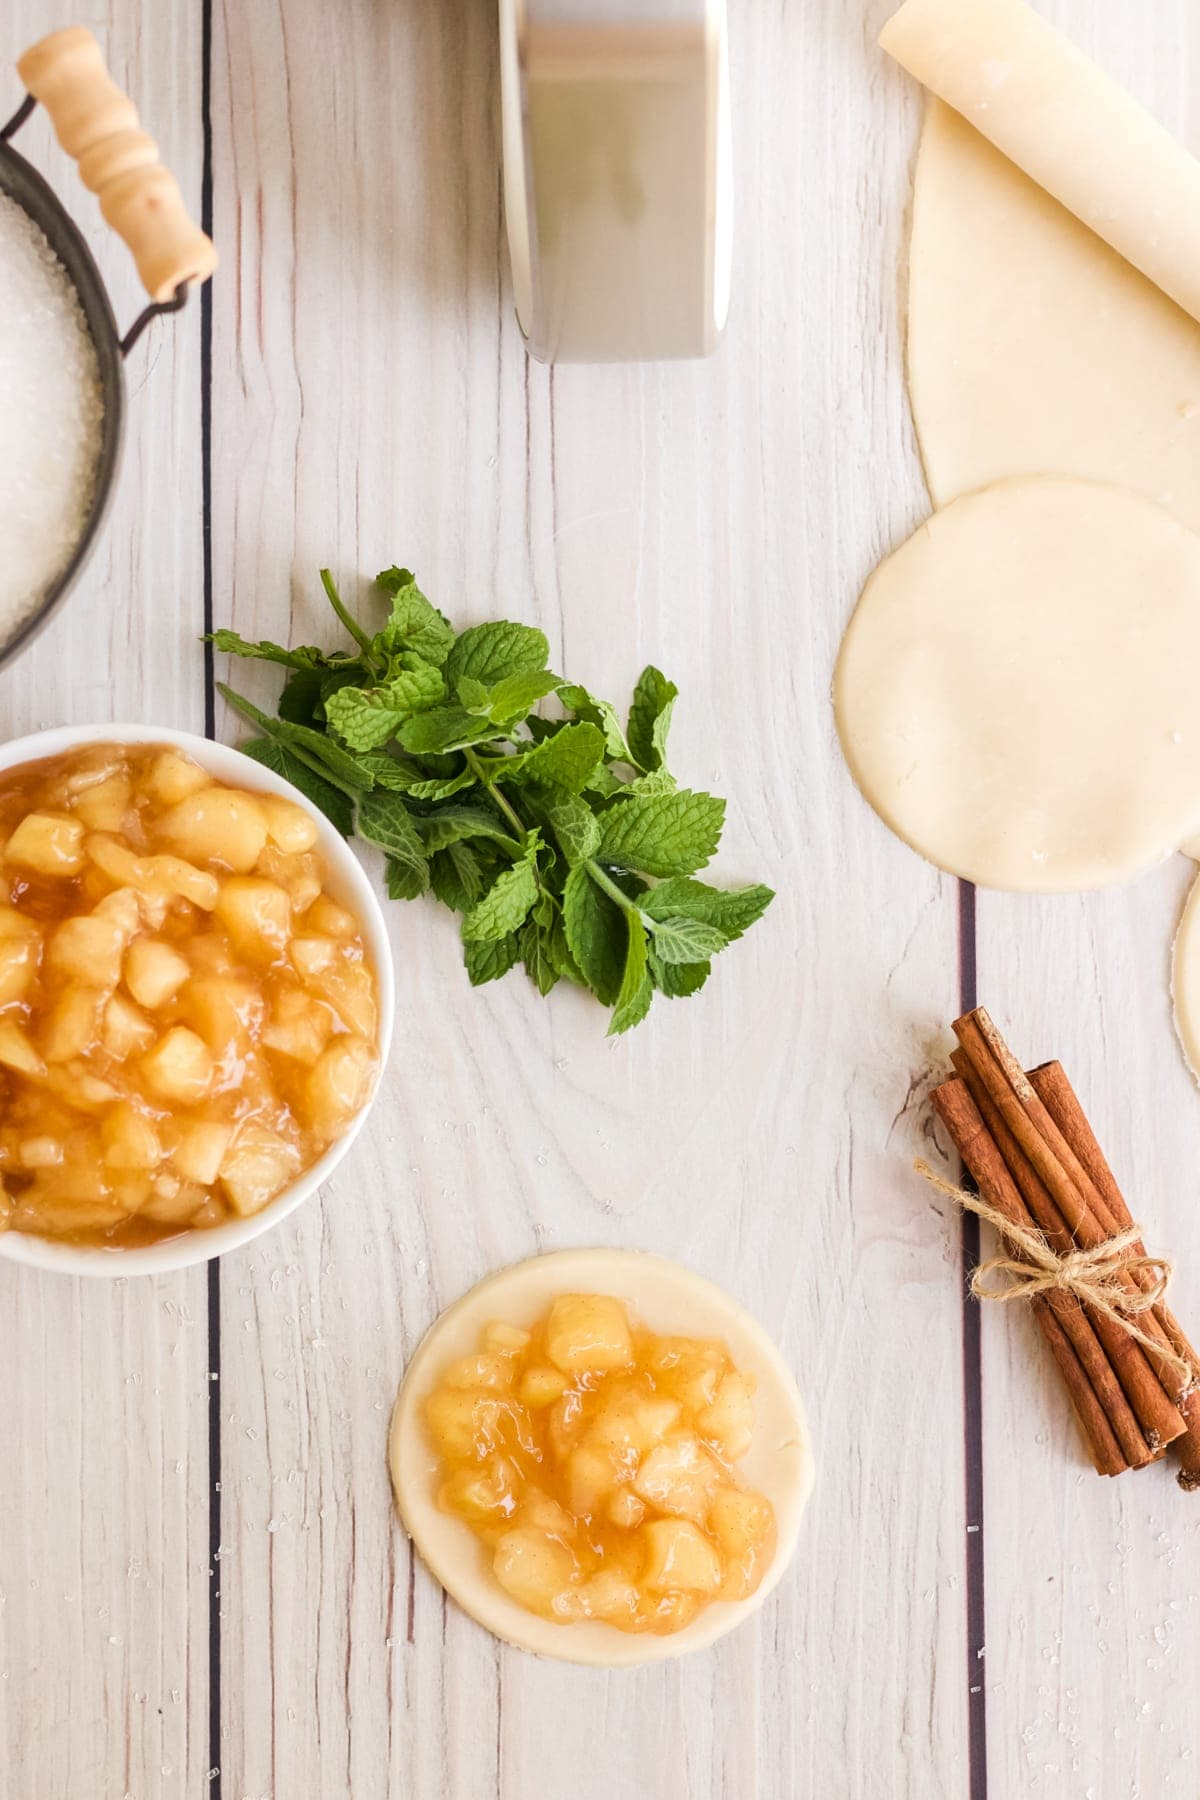 bowl of apple pie filling and pie crusts